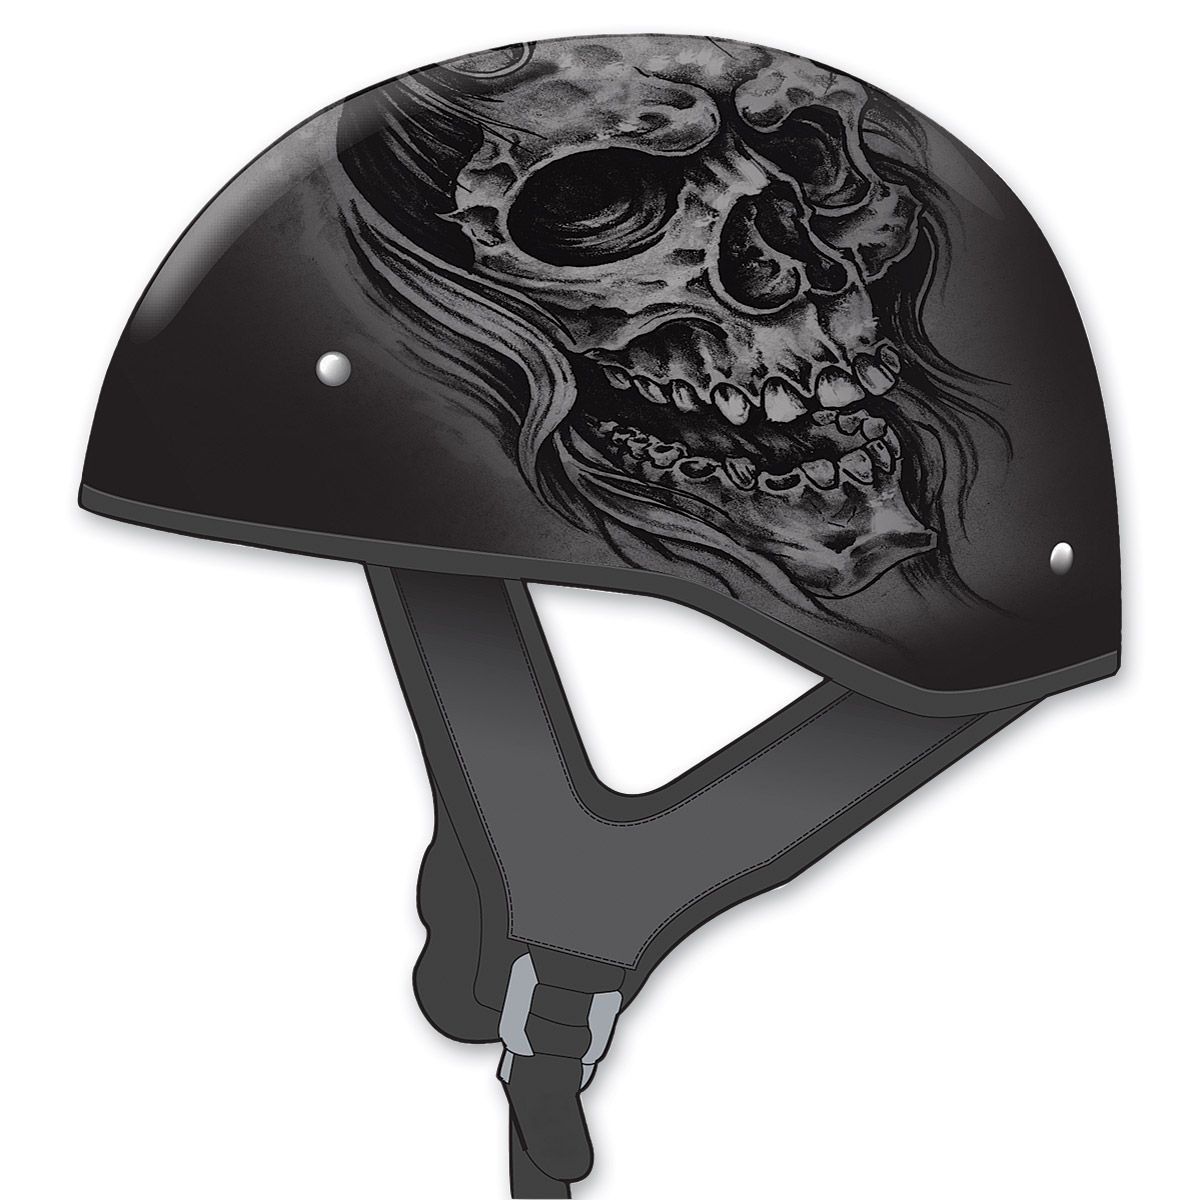 Gmax gm naked ghostrip flat blacksilver half helmet